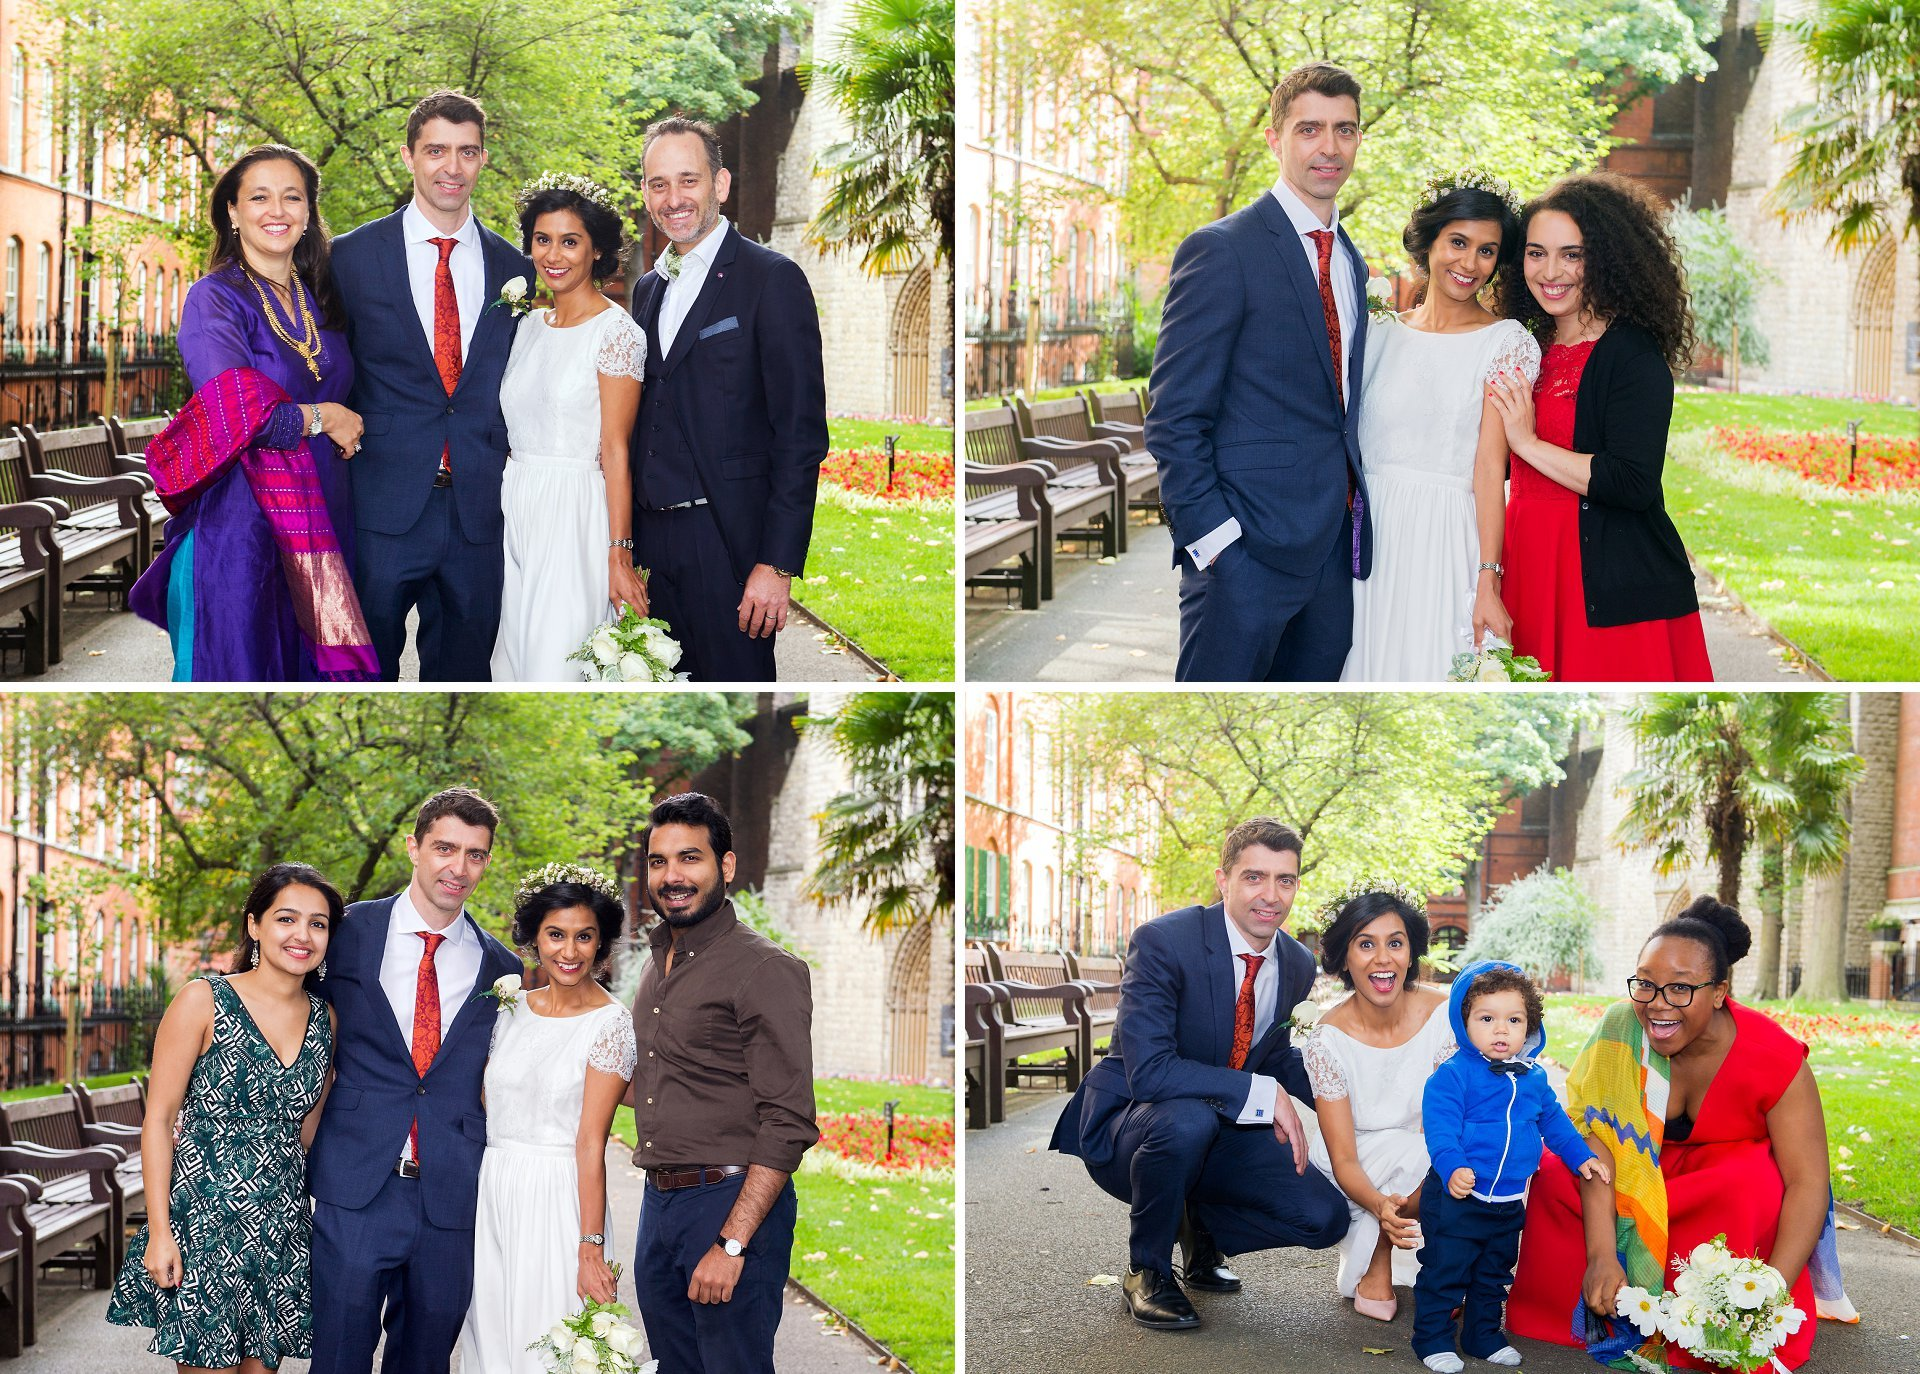 mount street gardens mayfair wedding photographer takes photos of family groups